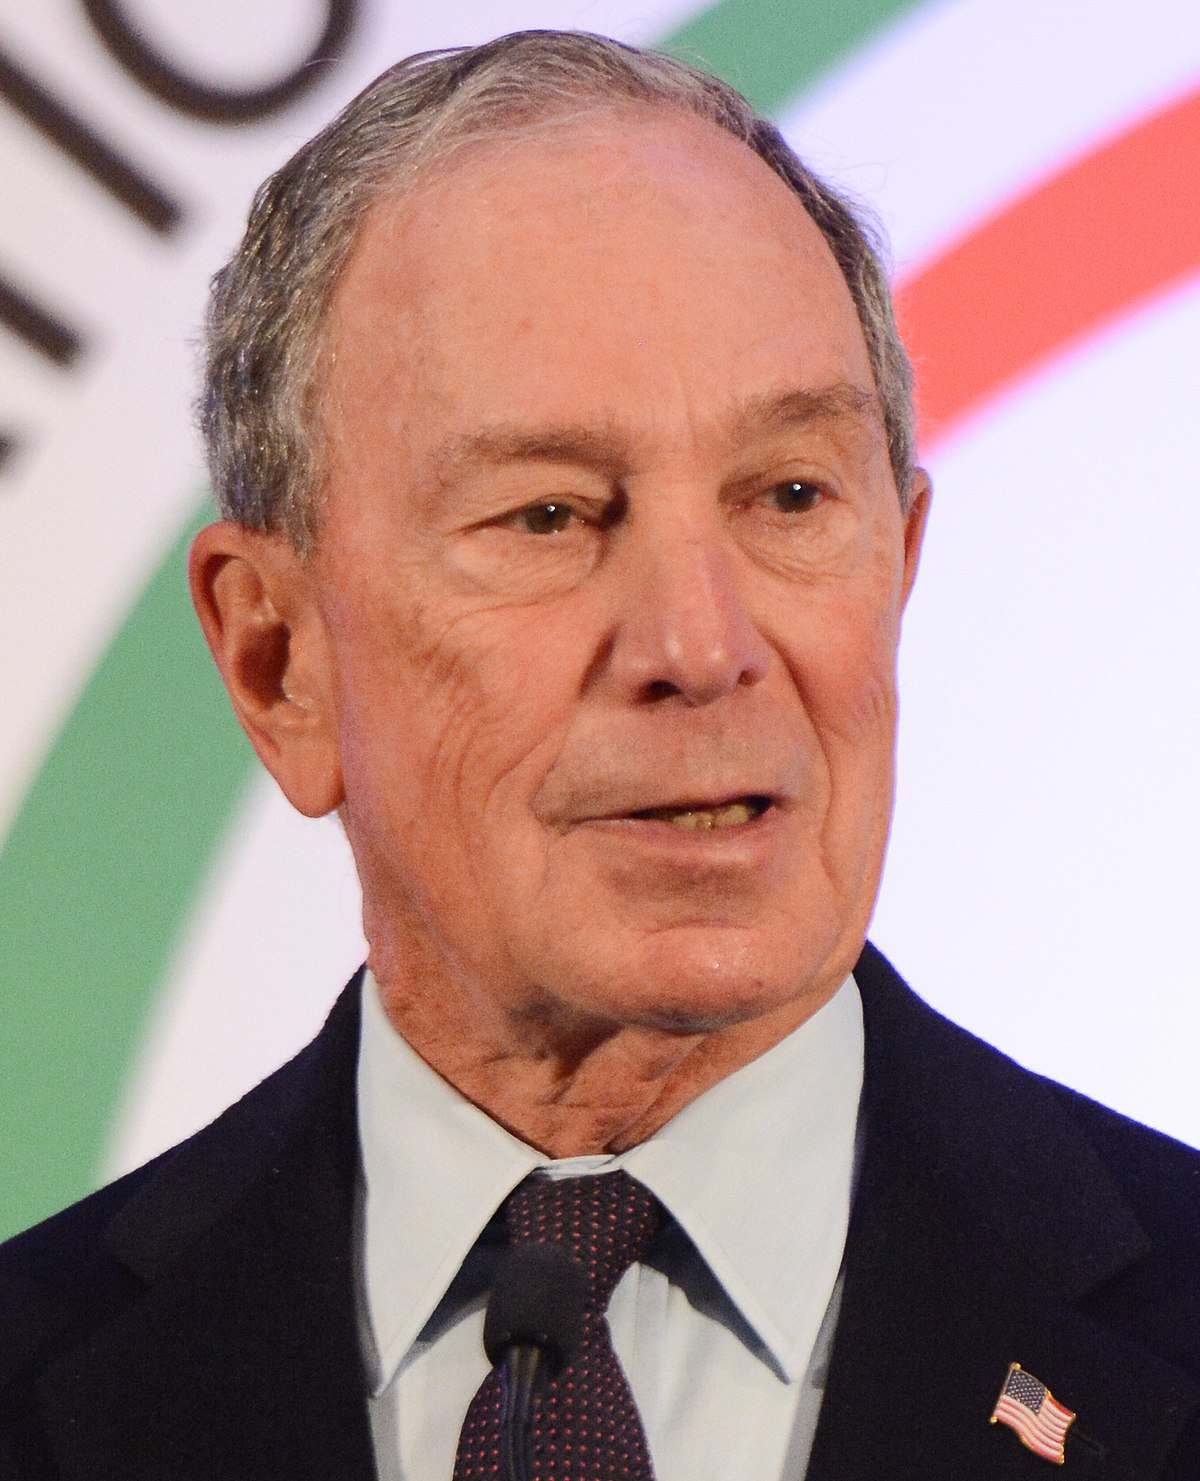 michael bloomberg - photo #37